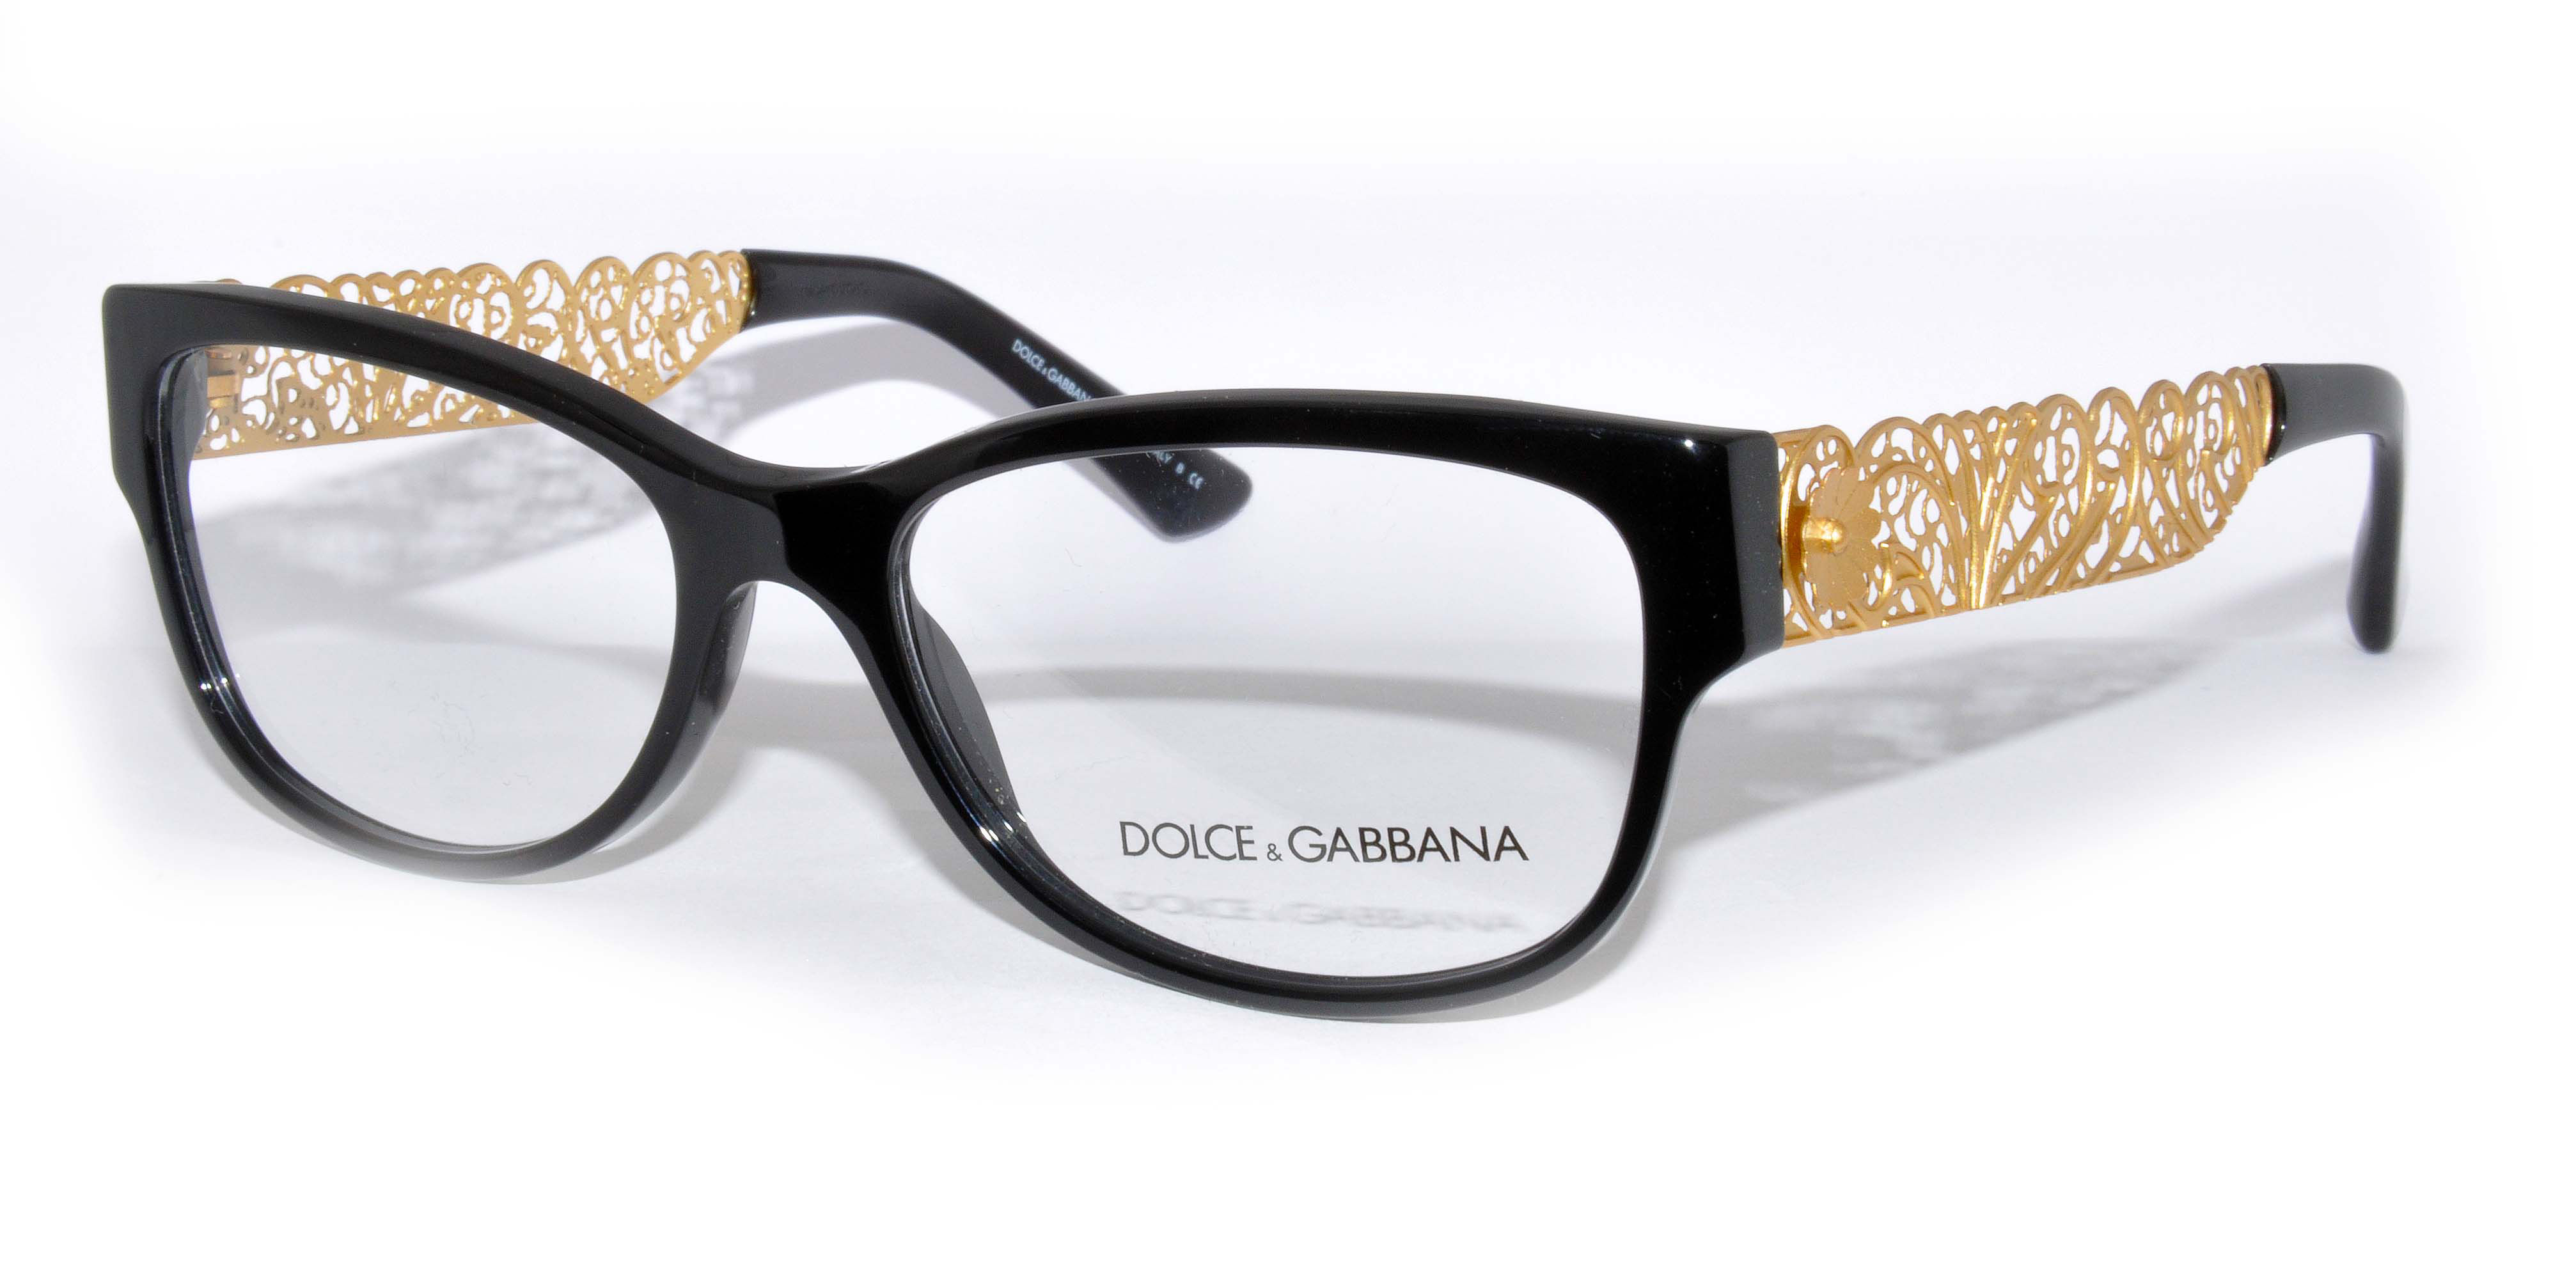 Dolce And Gabbana Gold Frame Glasses : Dolce &Gabbana glasses - Dolce &Gabbana DG 3185 FILIGRANA ...